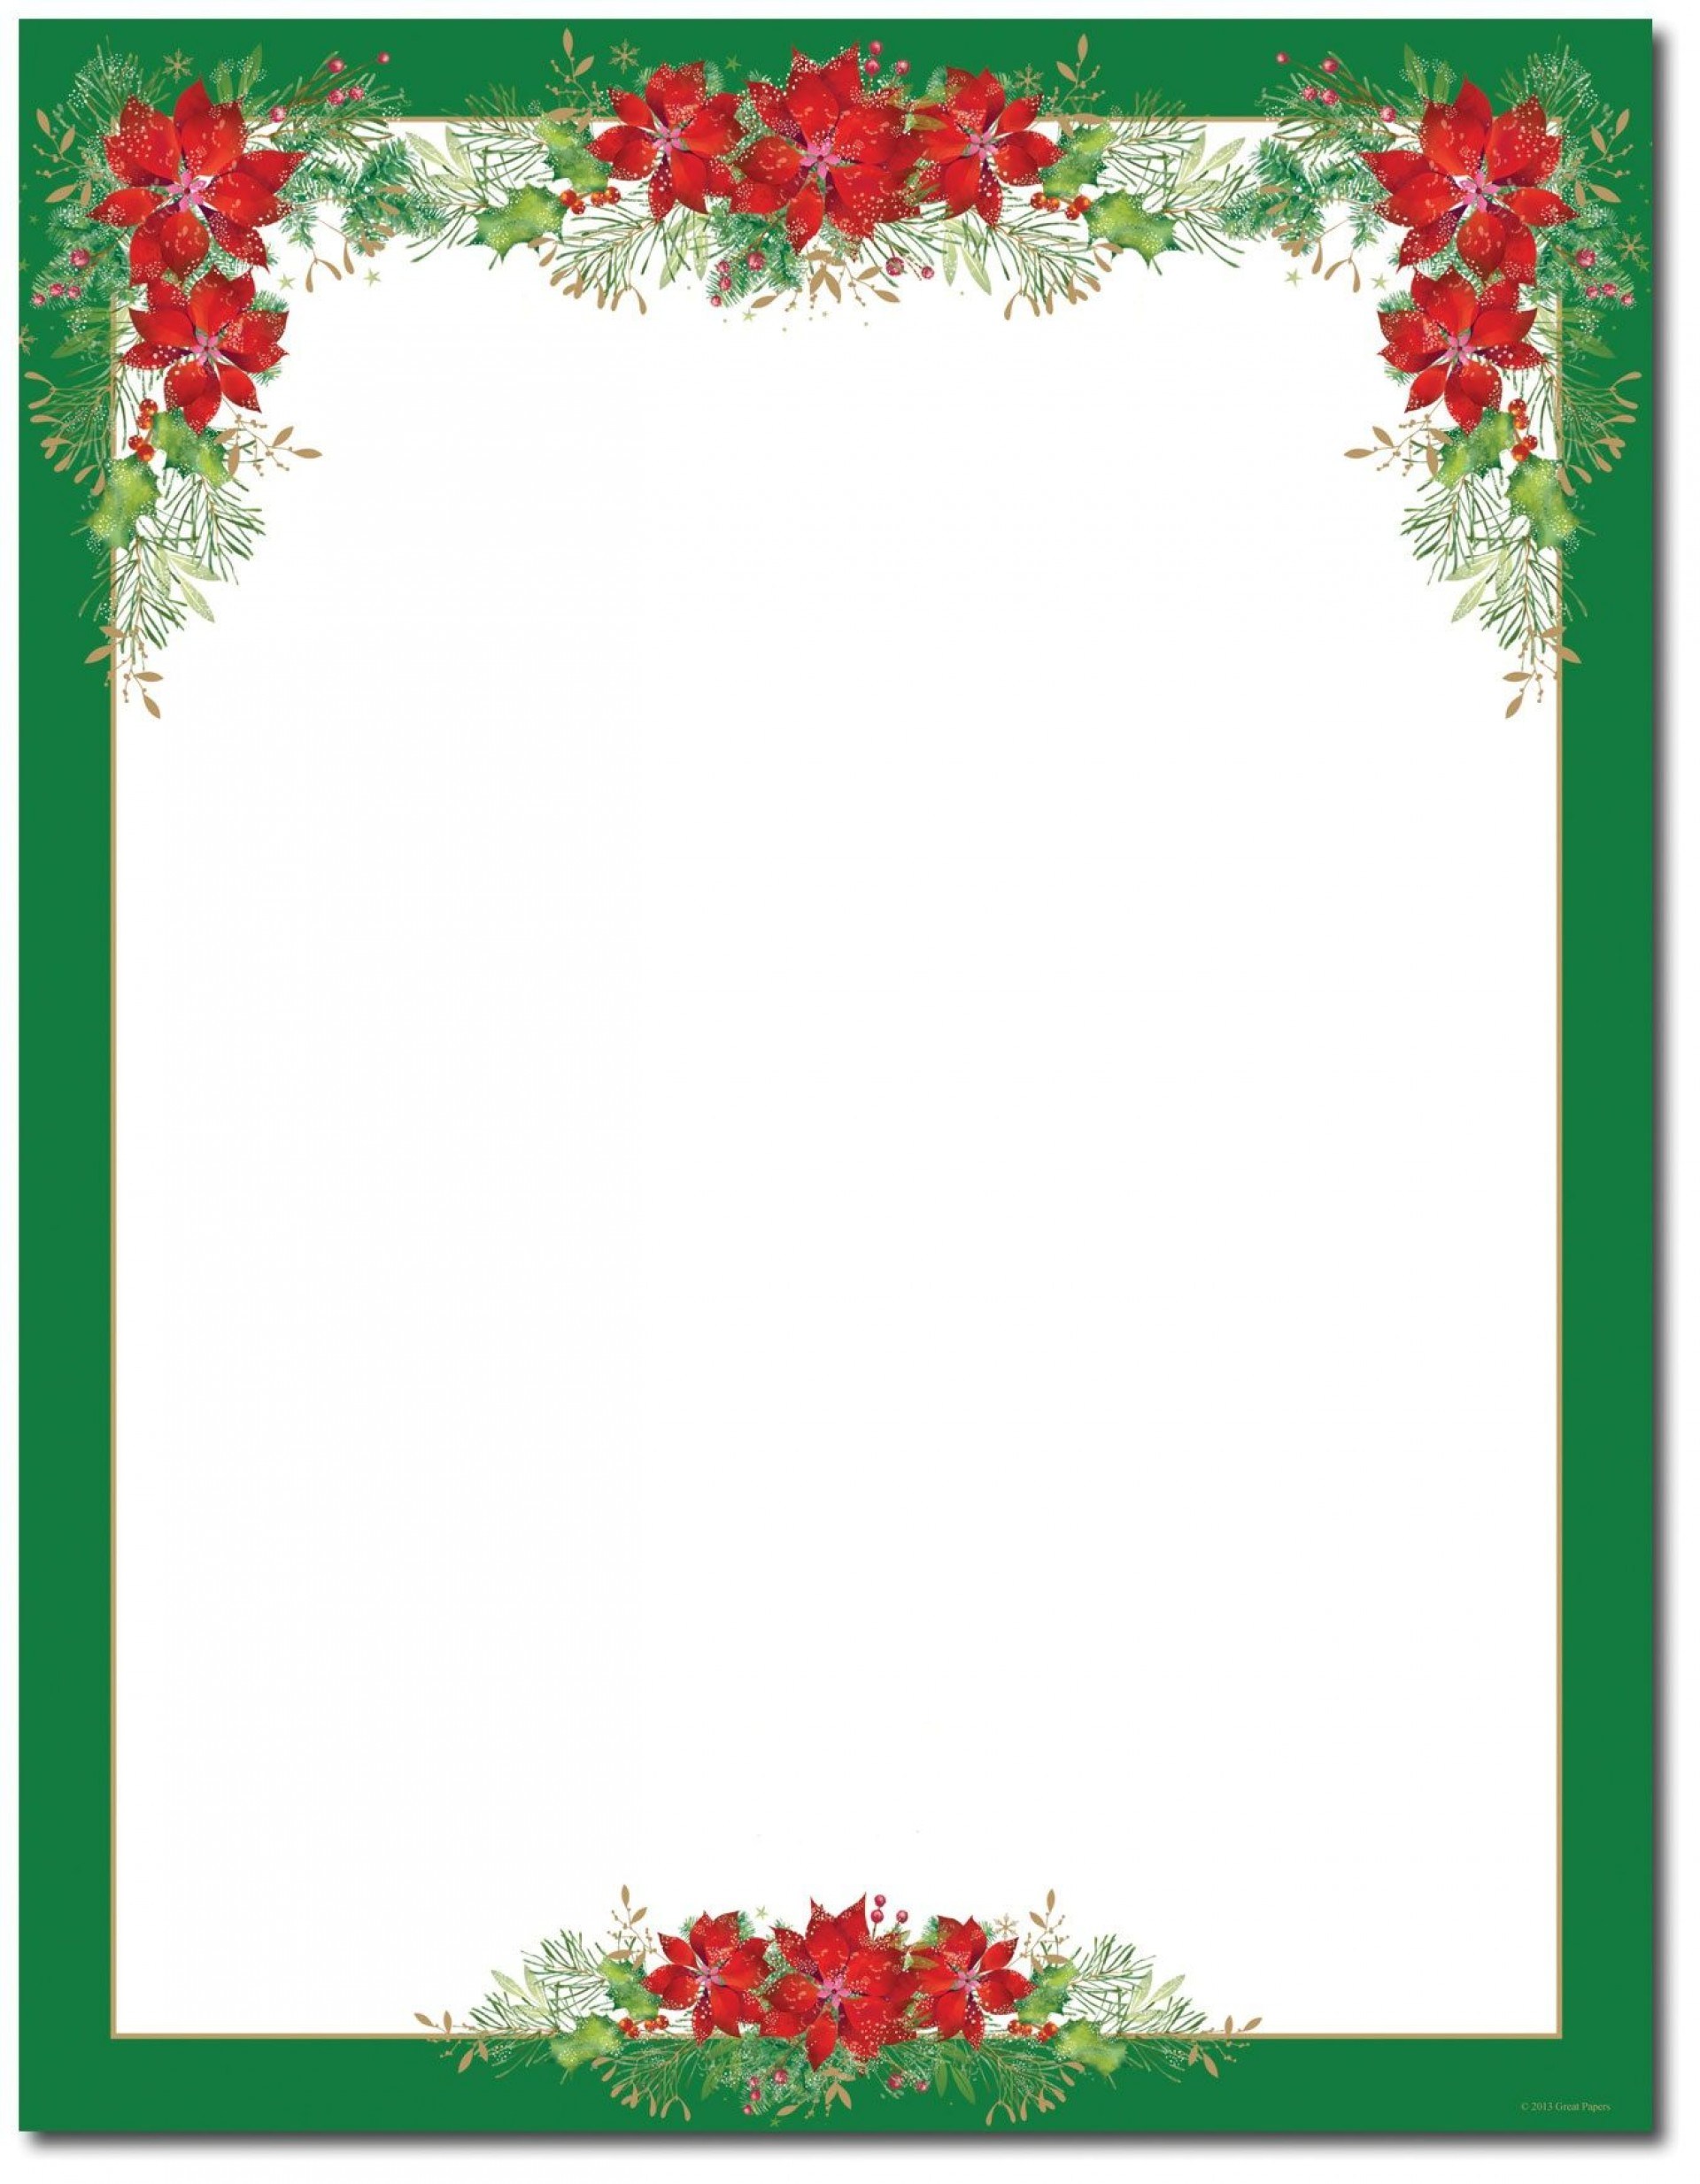 002 Imposing Christma Stationery Template Word Free Design  Religiou For Downloadable1920